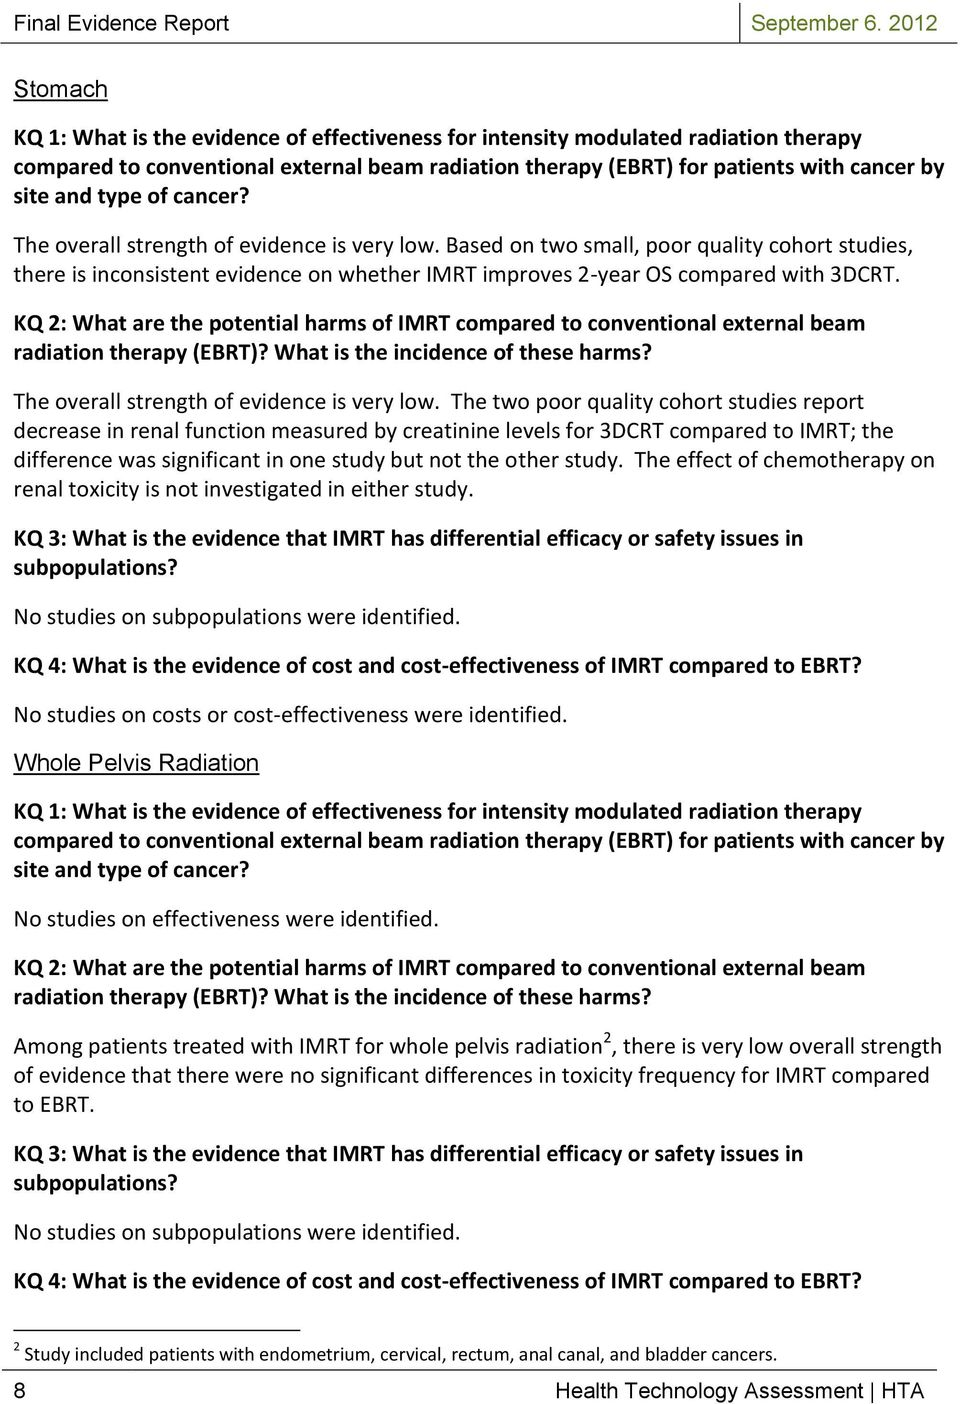 KQ 2: What are the potential harms of IMRT compared to conventional external beam radiation therapy (EBRT)? What is the incidence of these harms? The overall strength of evidence is very low.